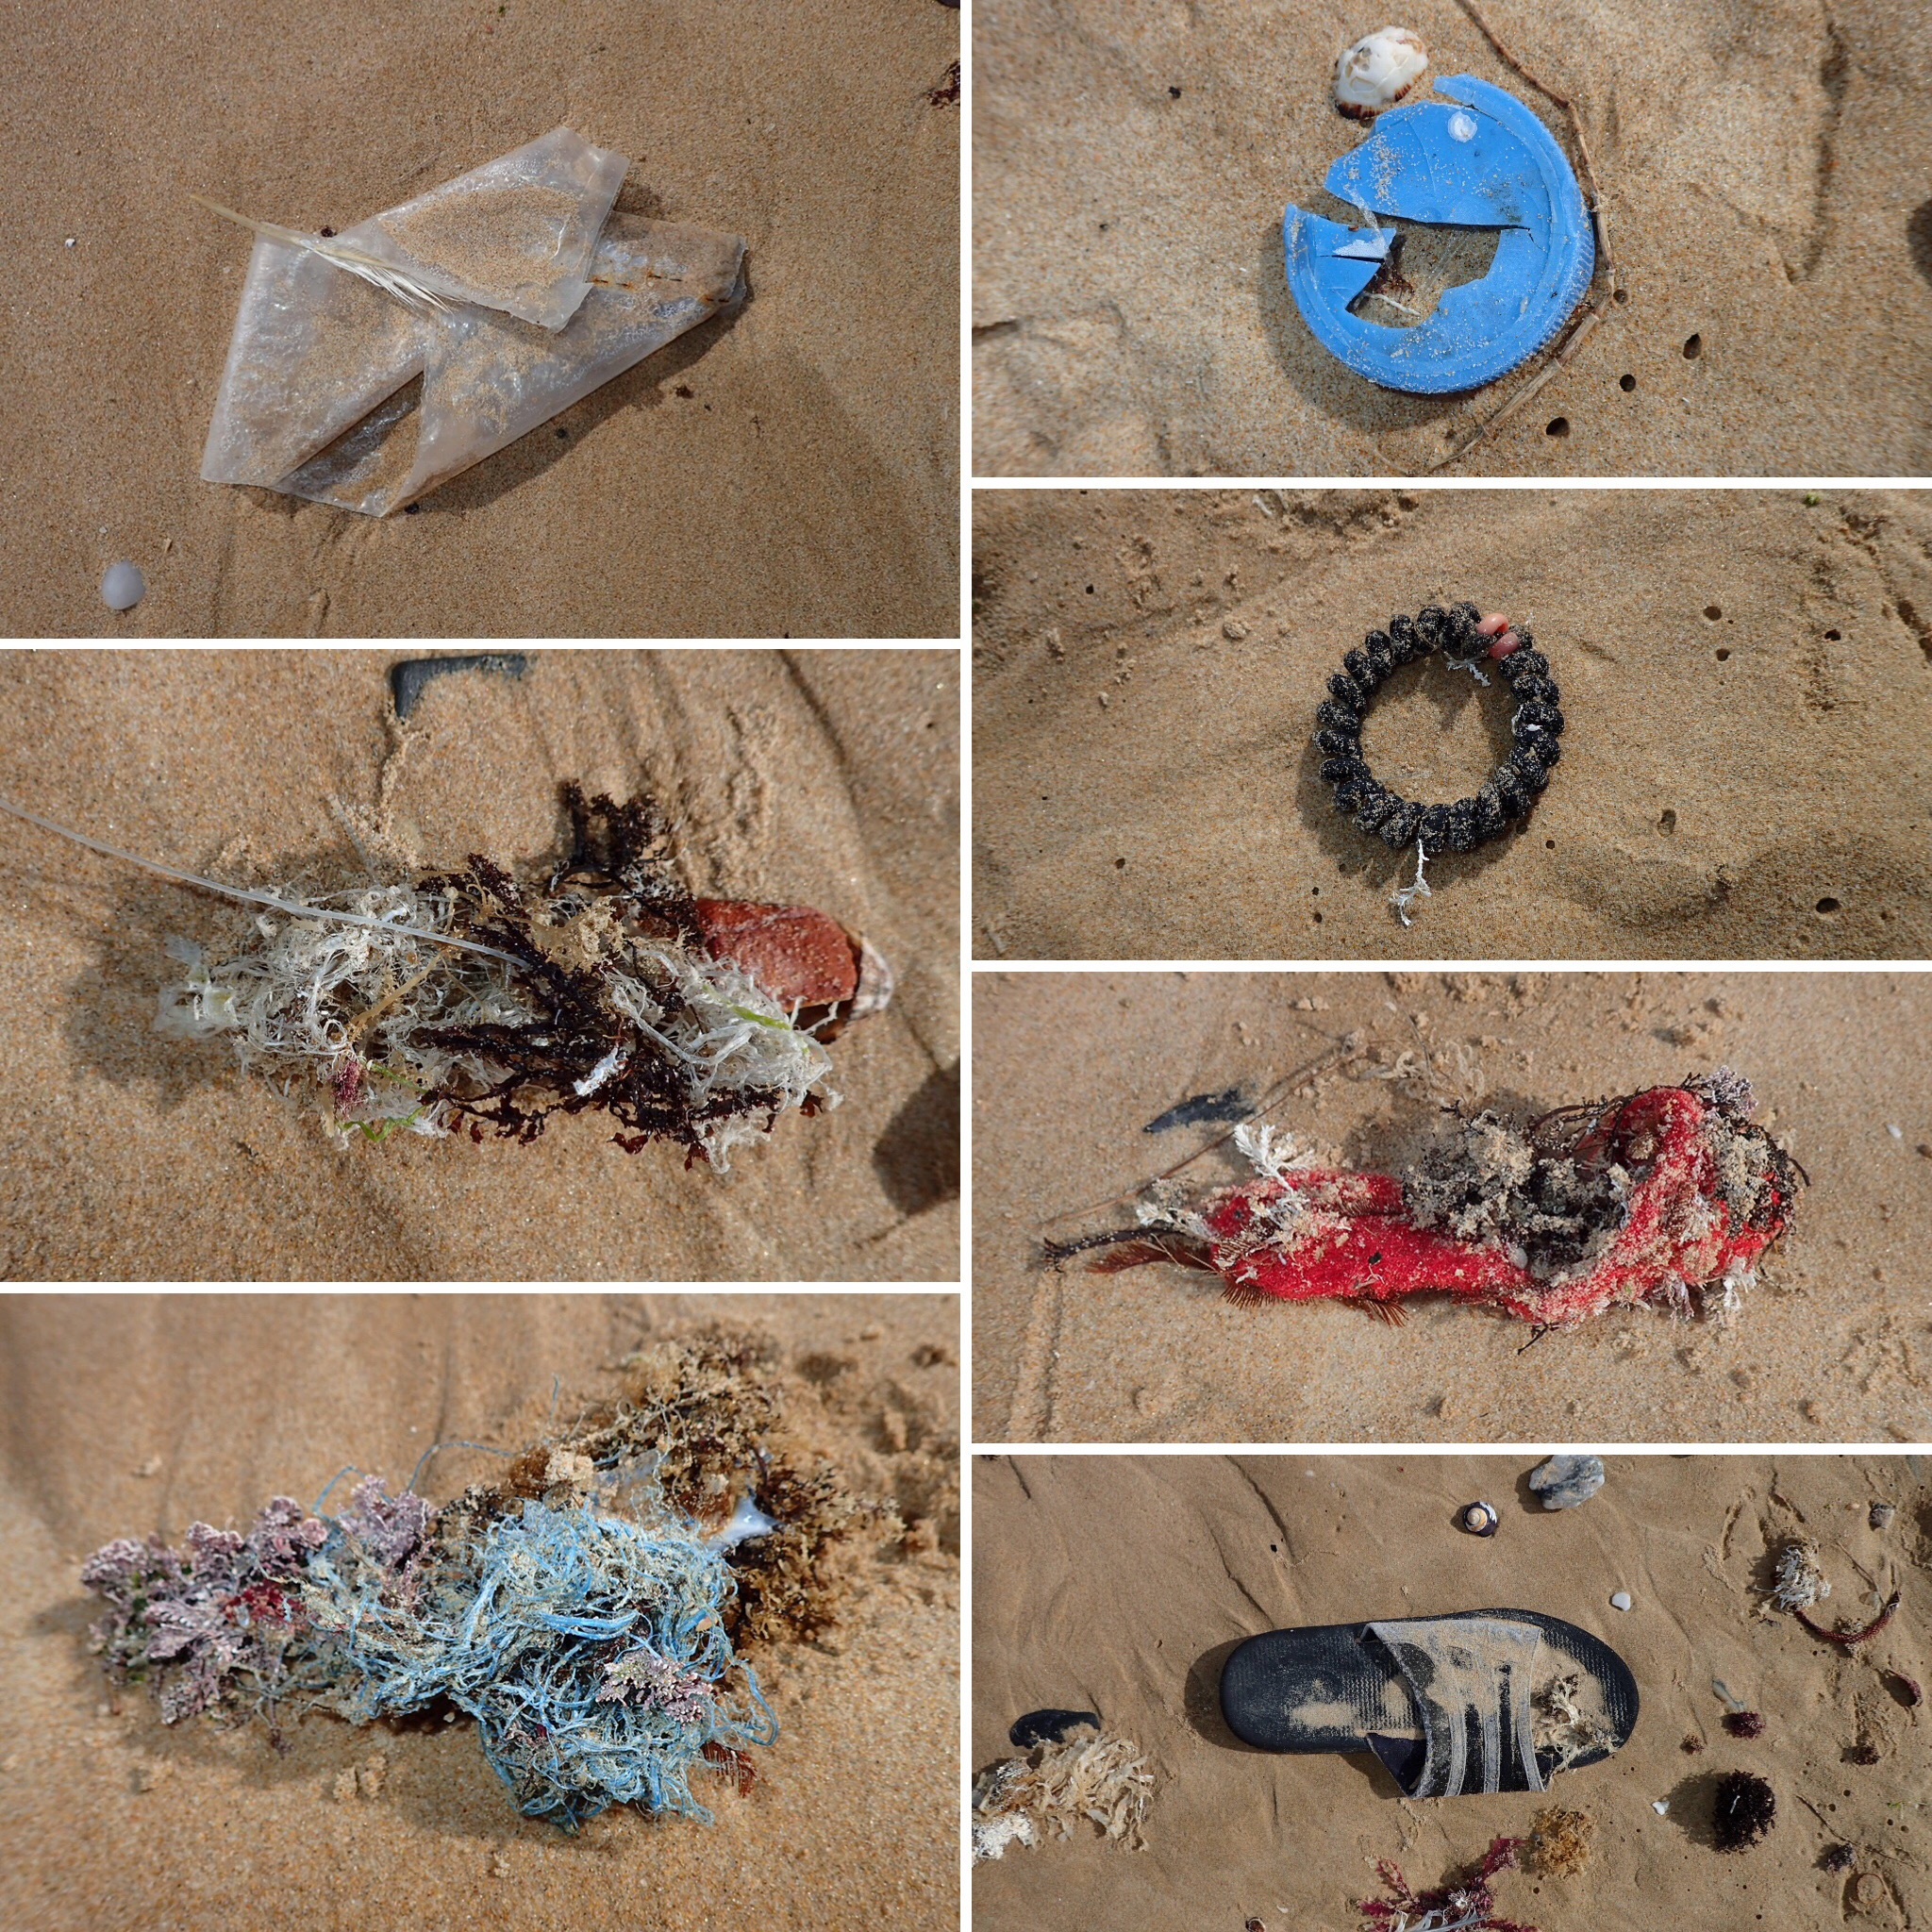 Tired of this being your beach experience? Have your own clean-up every time you visit. You can make a difference! Photos: @ritasteyn